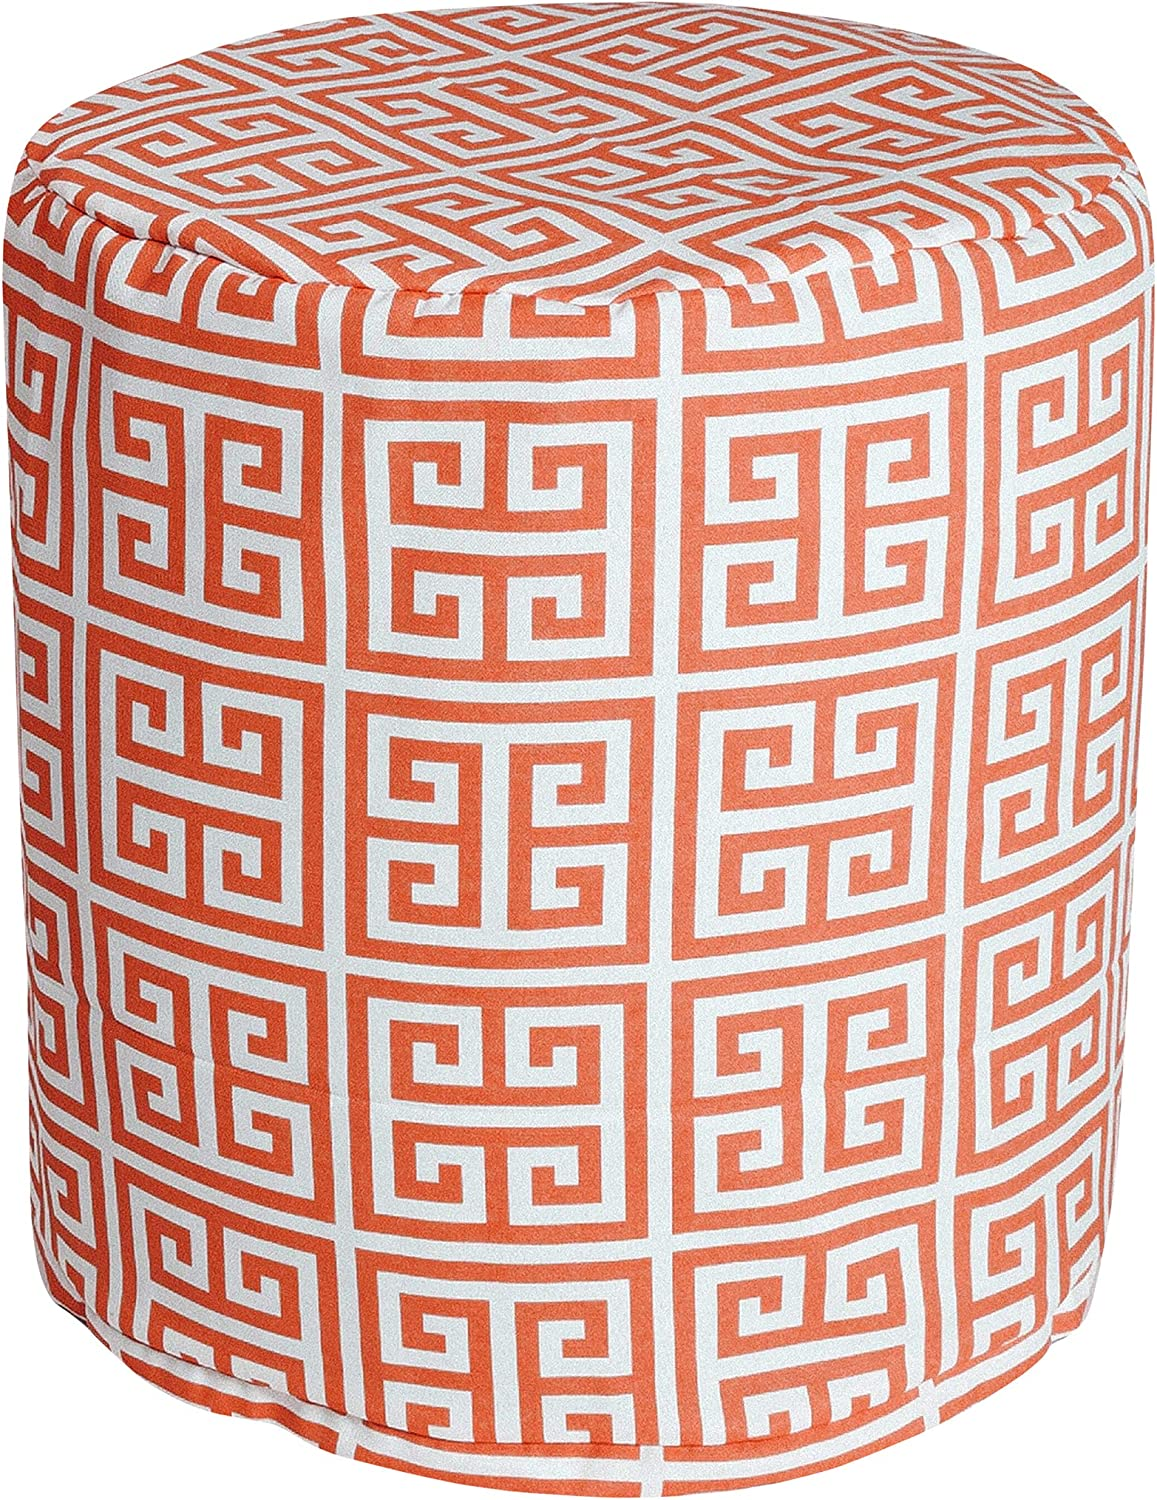 Factory outlet Majestic Home Goods Orange Towers Indoor Popular standard Ottoma Bean Bag Outdoor